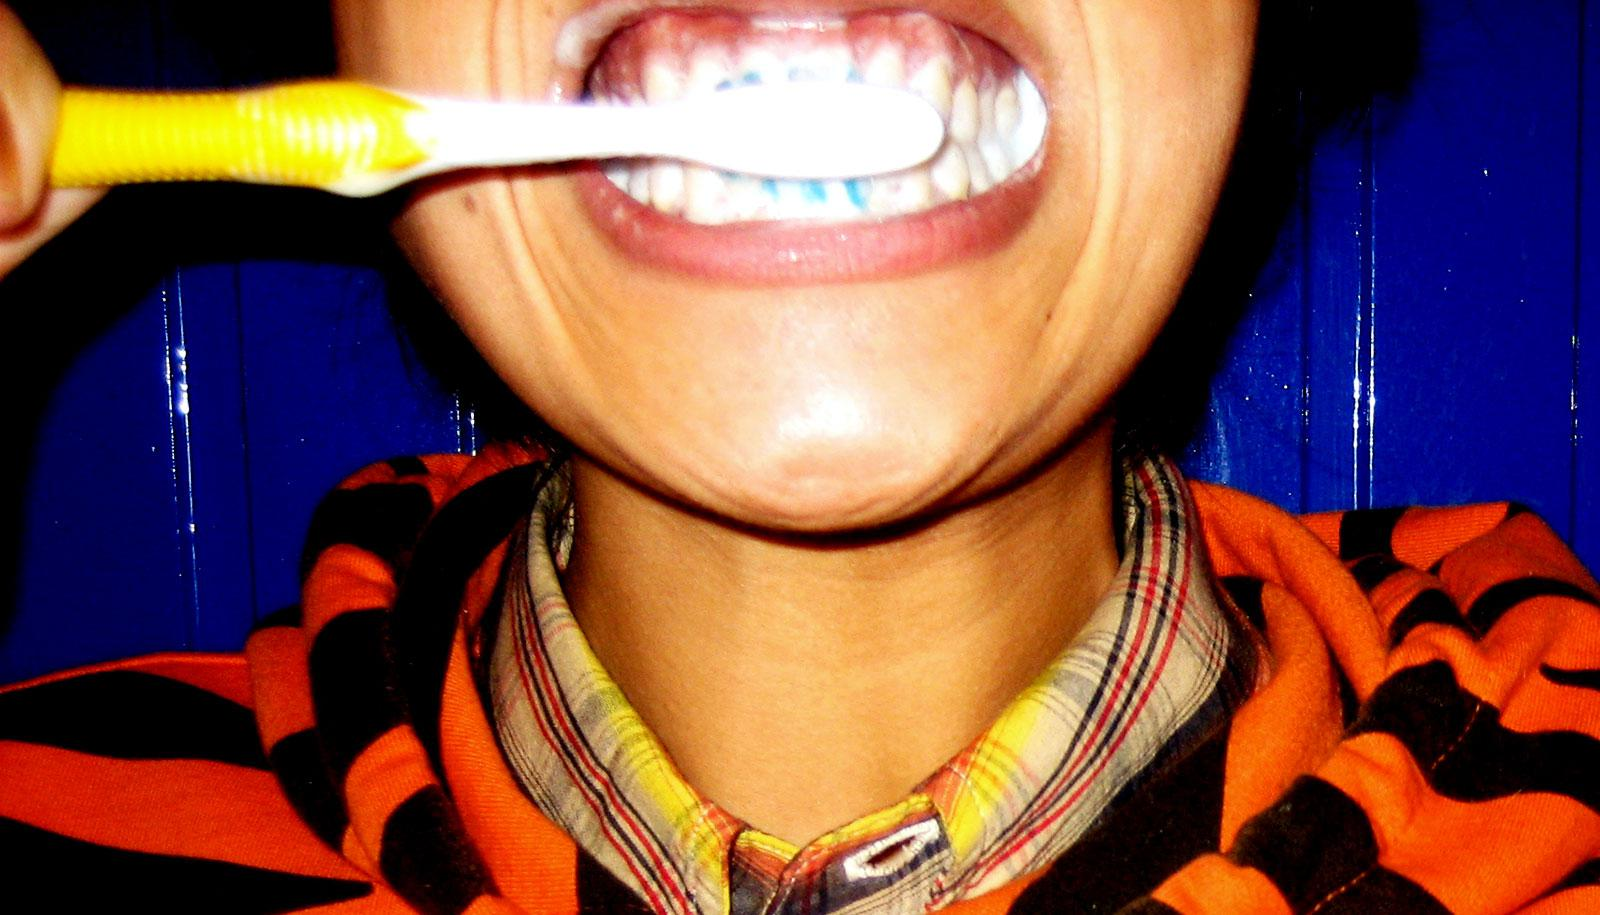 brushing teeth in tiger hoodie (triclosan concept)